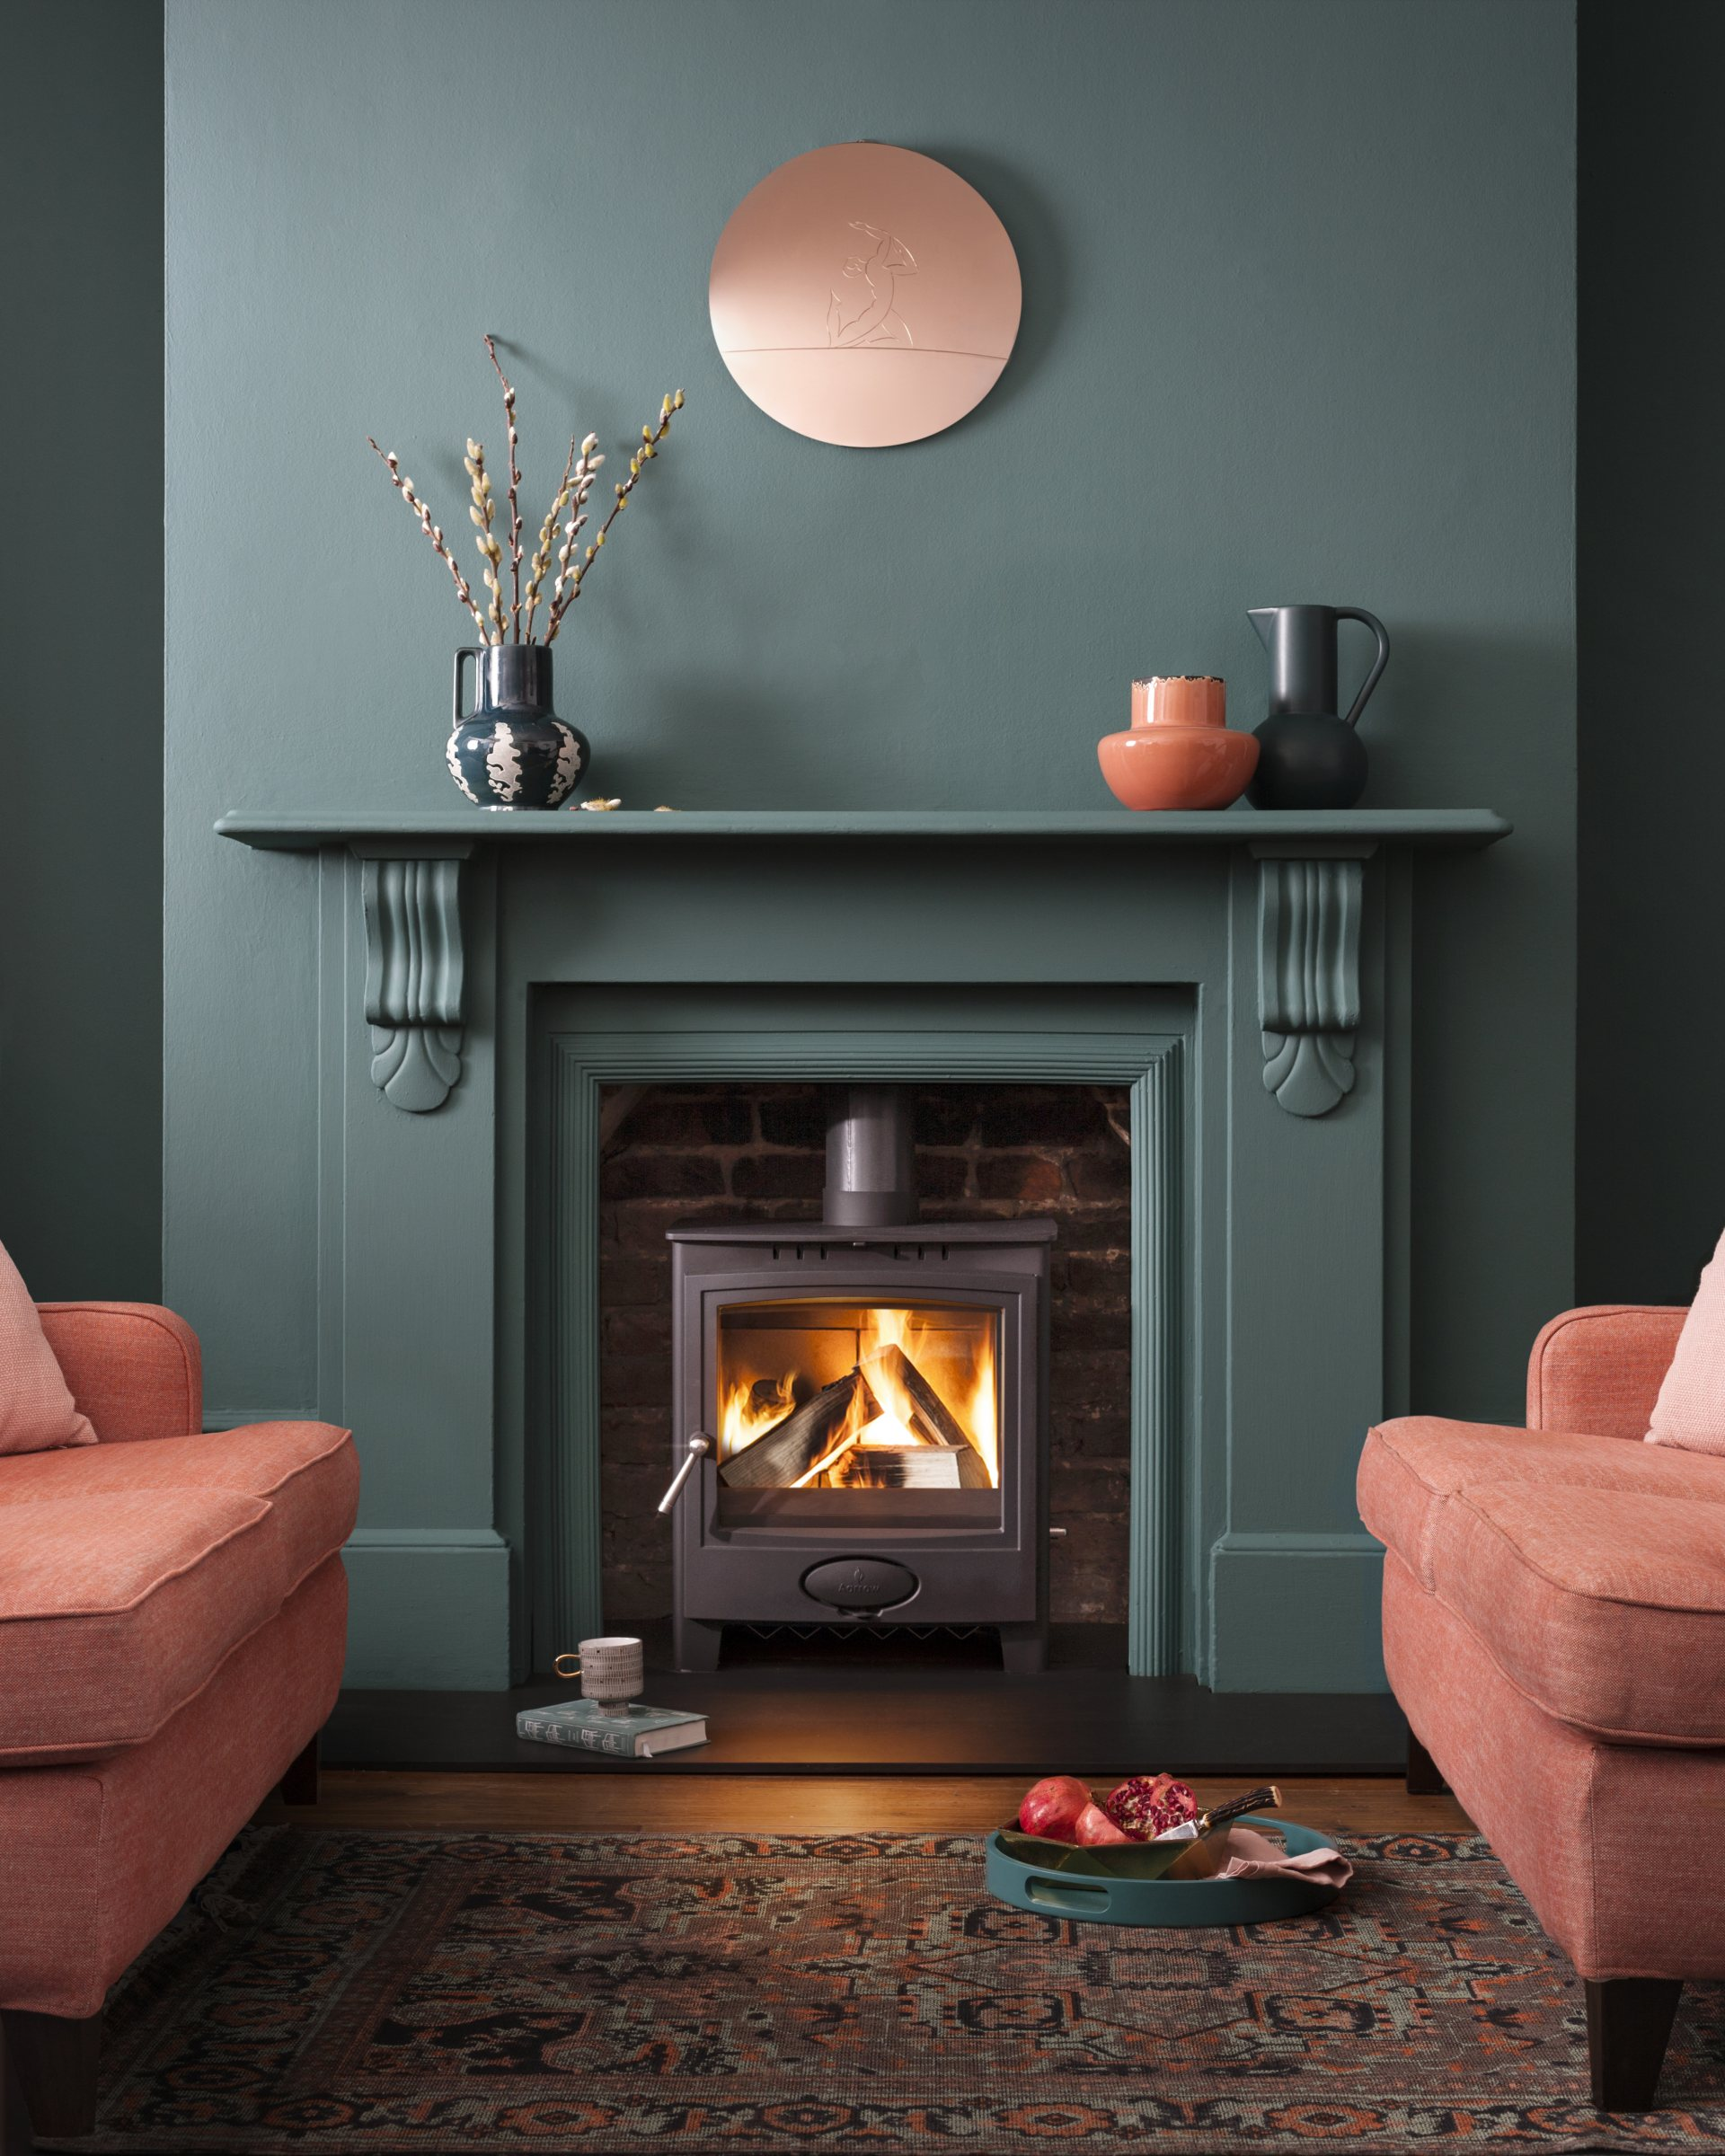 Ecoburn Plus 5 Widescreen stove in lit in fireplace in modern room with green walls and peach-coloured sofa and armchair